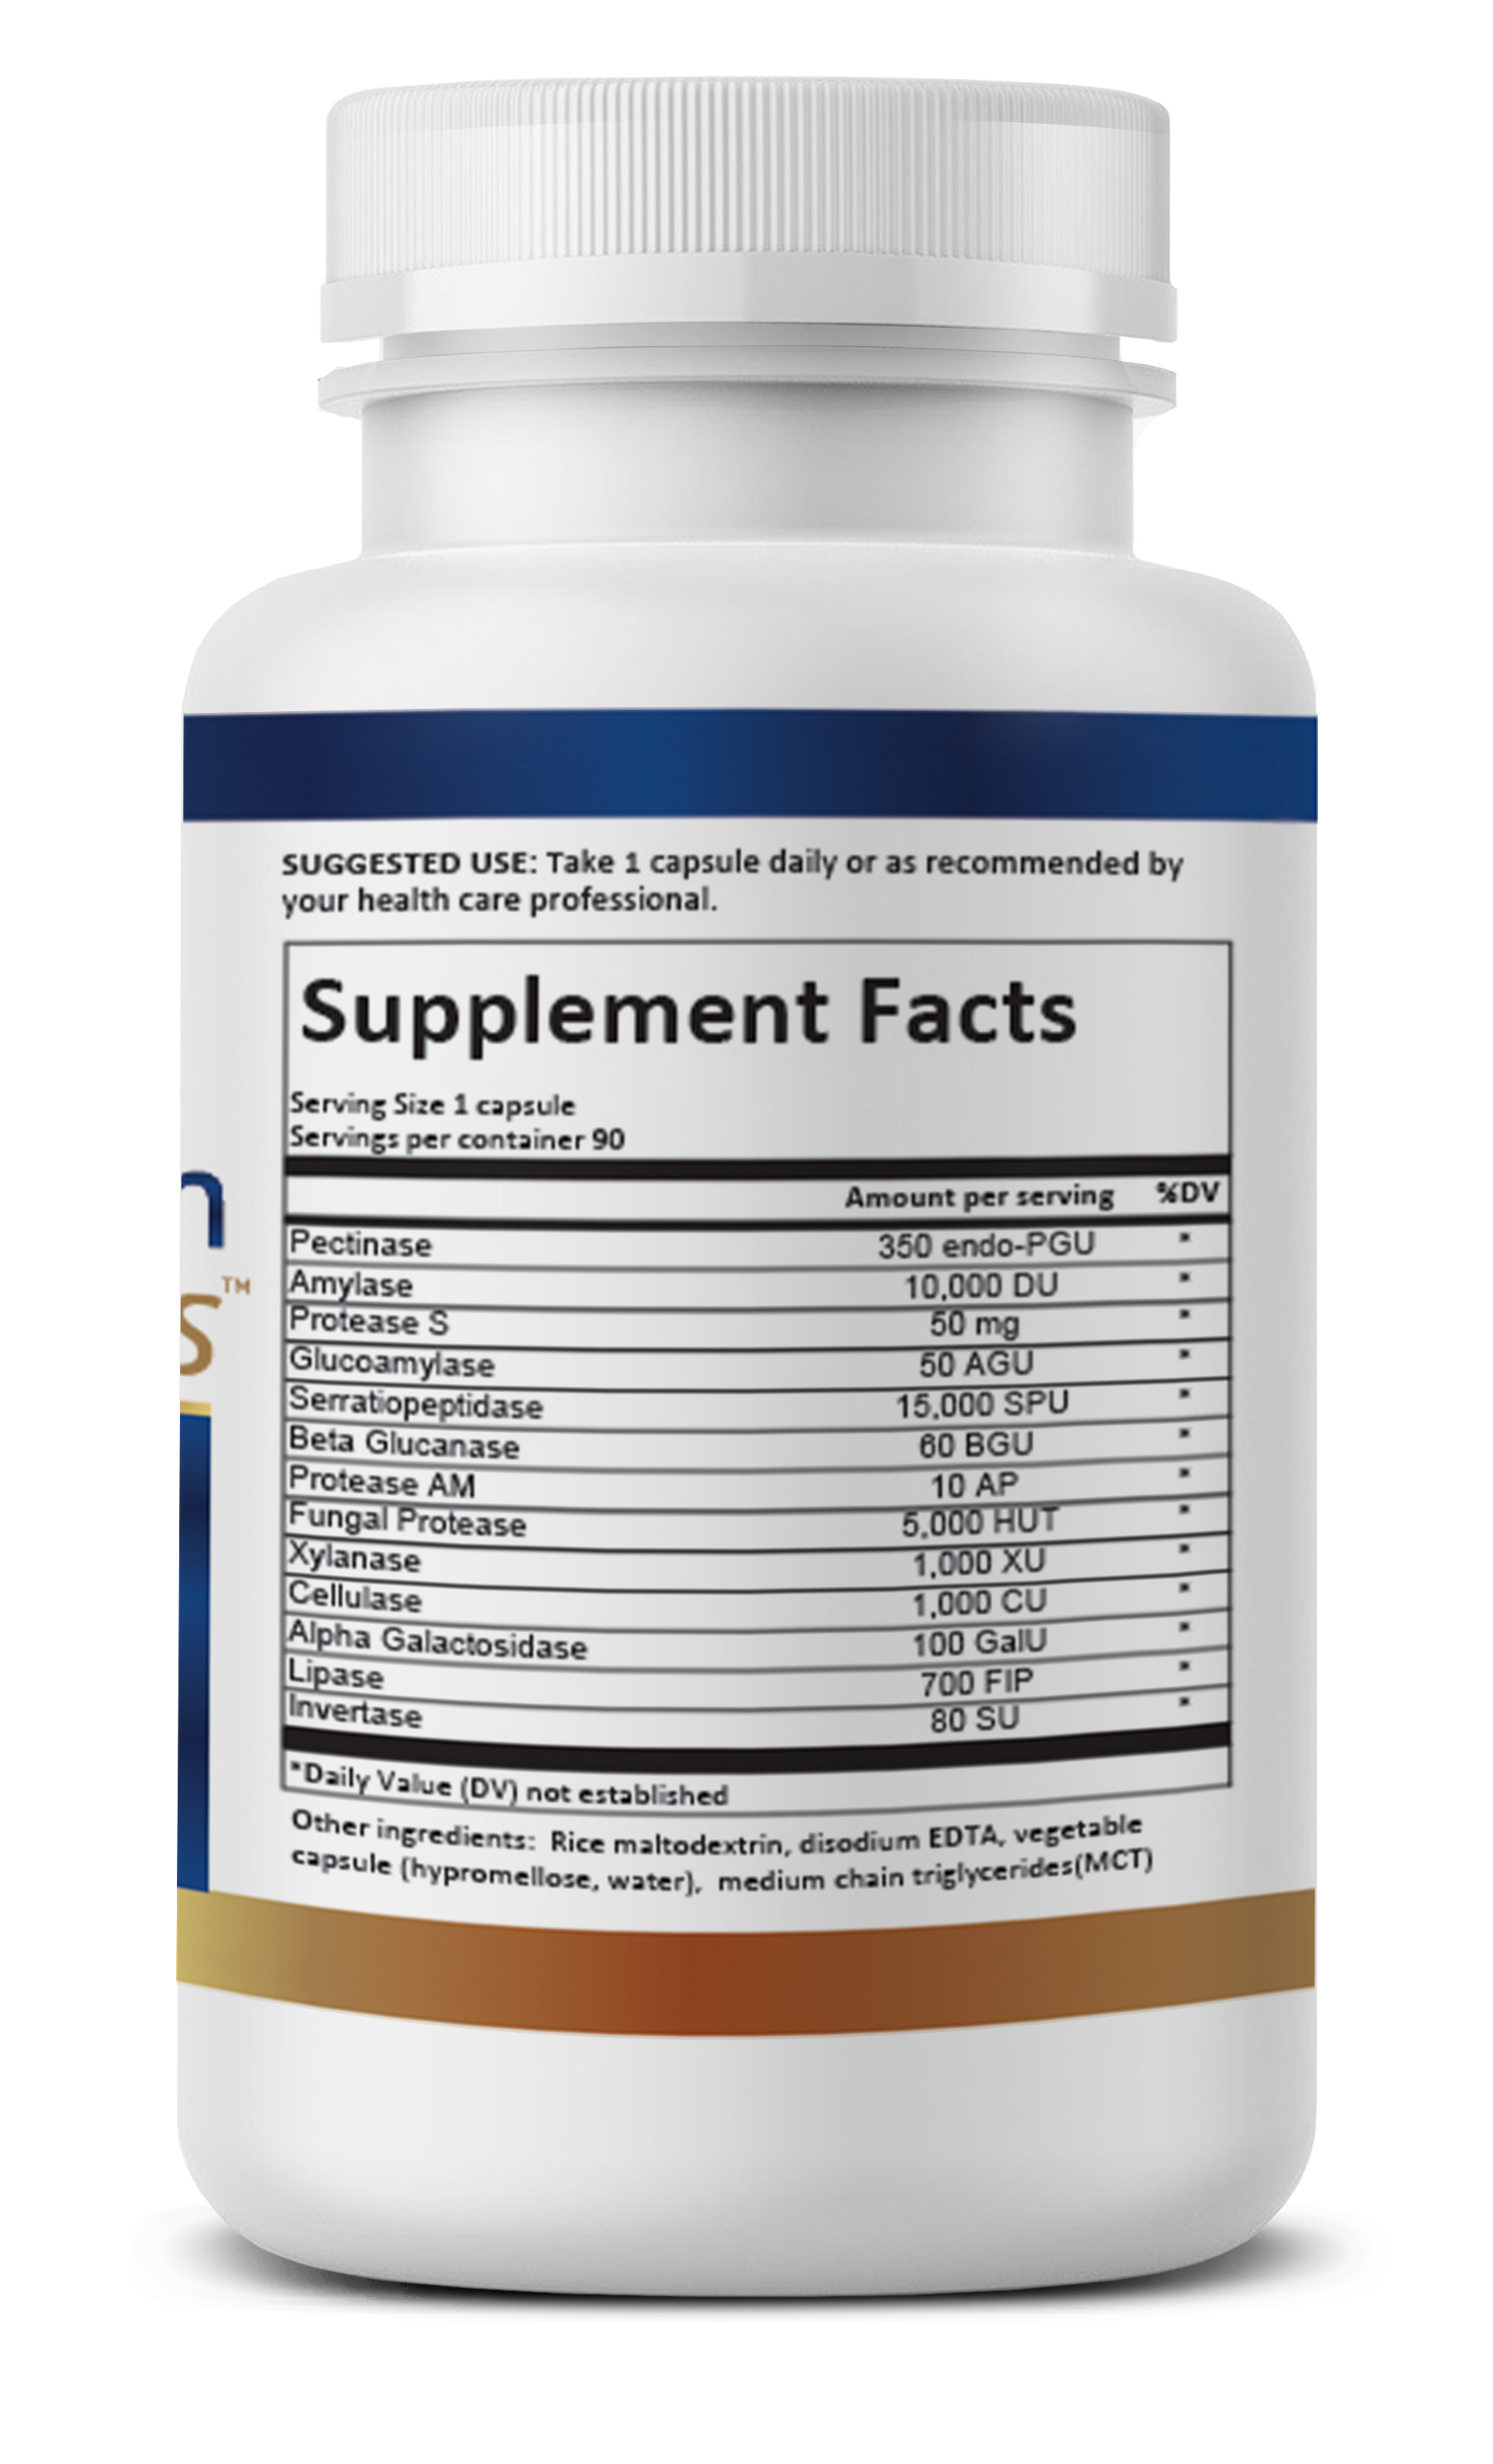 MucoSolve Supplement facts label